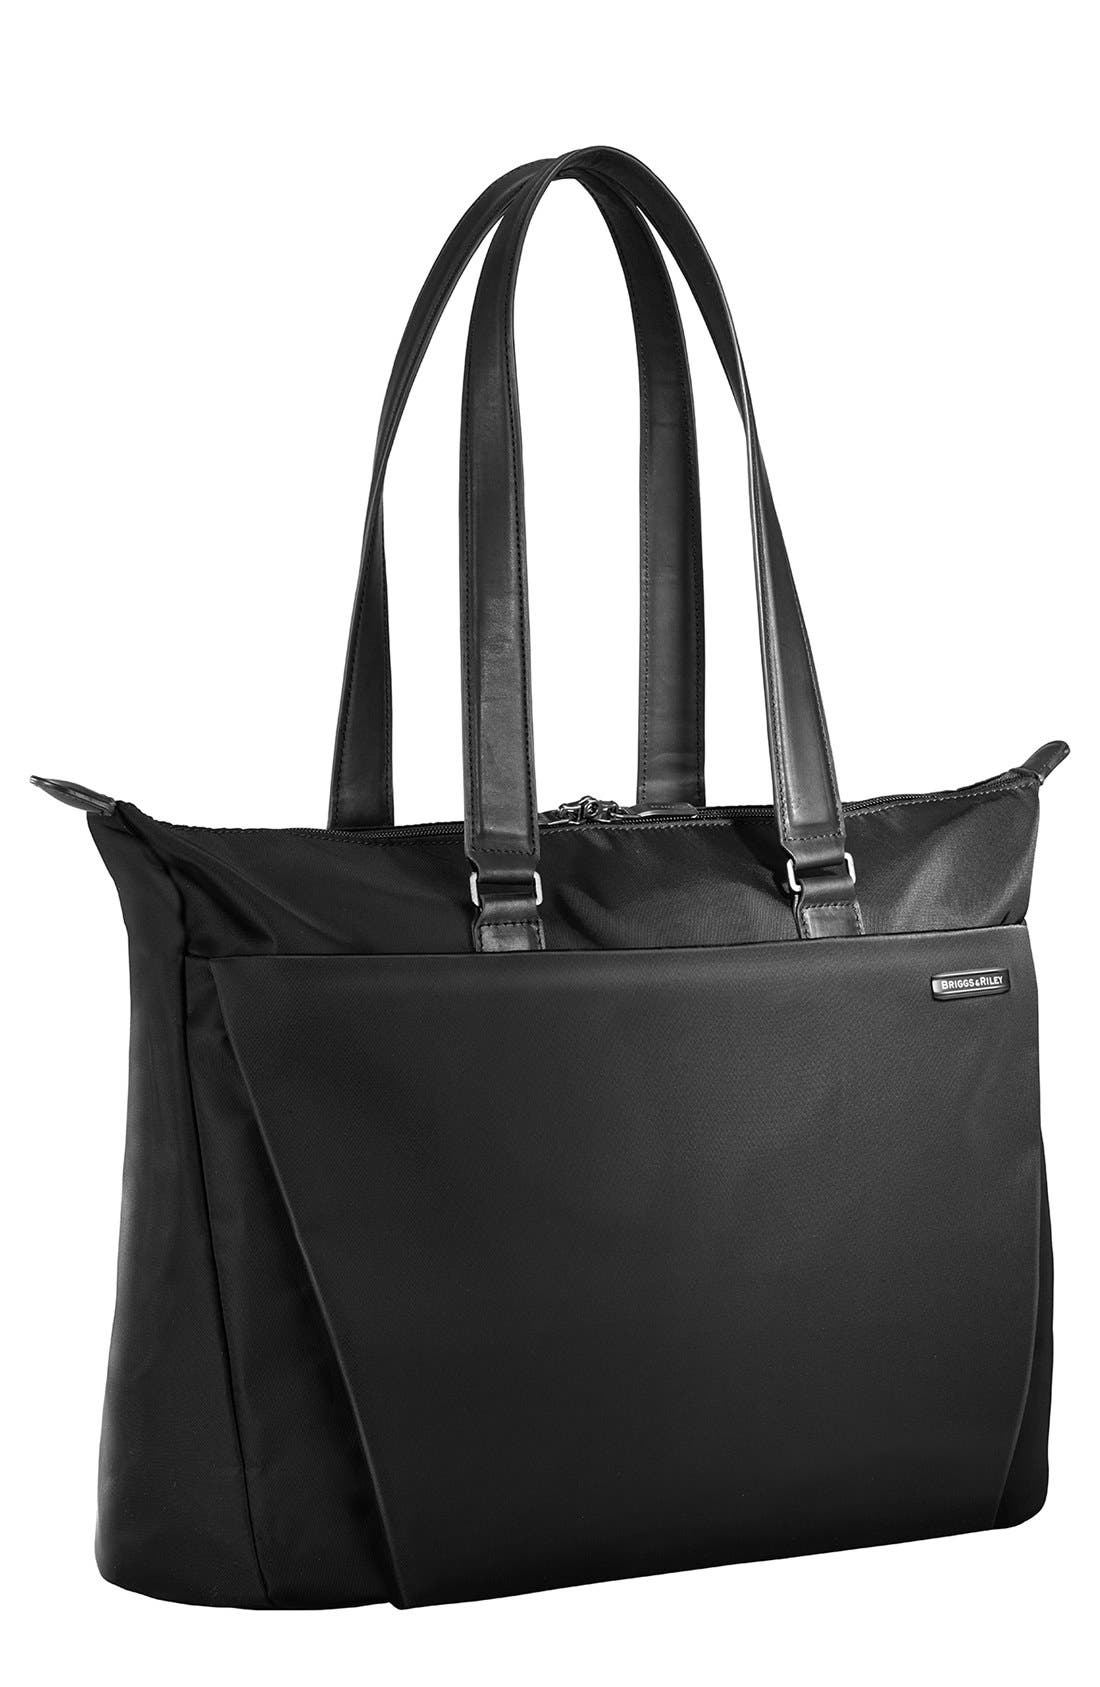 Sympatico Tote,                         Main,                         color, Black